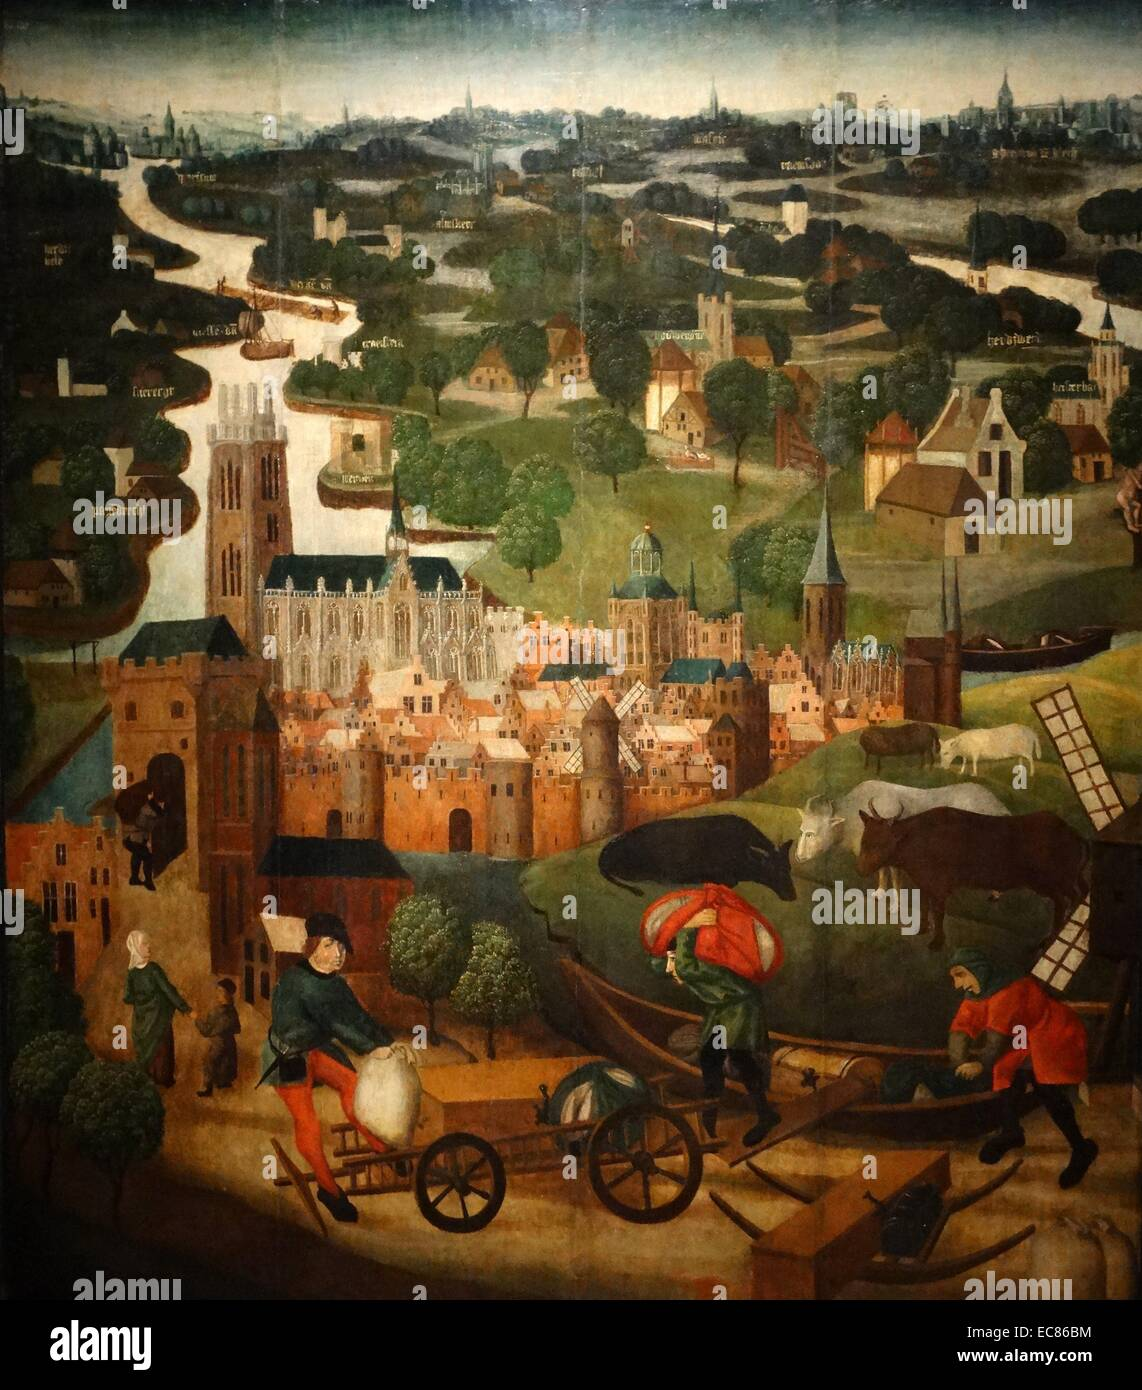 Painting depicting Saint Elizabeth's Day Flood painted by Master of the Saint Elizabeth Panels. Dated 15th Century - Stock Image